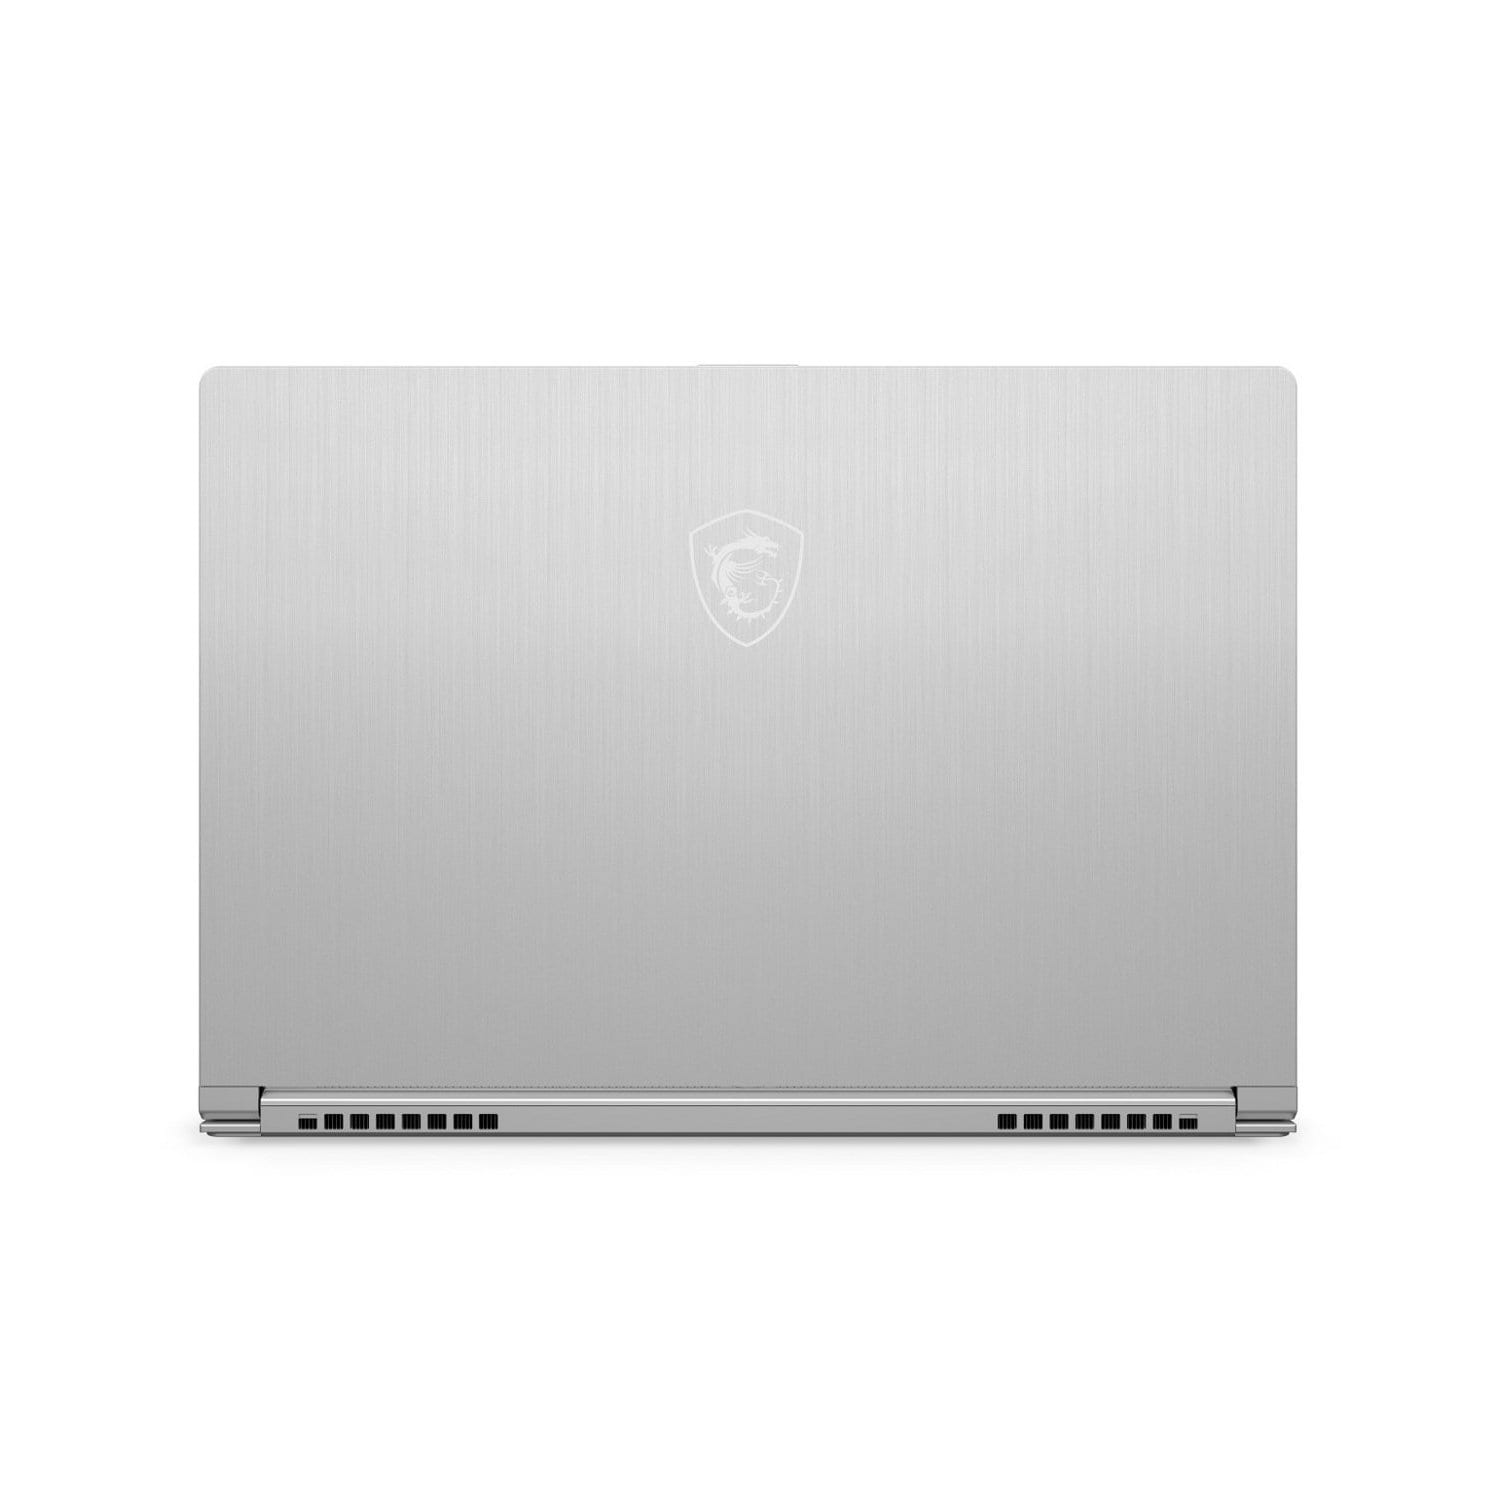 Laptop MSI Modern 14 A10RB-646PL i5-10210U/8GB/512GB SSD/MX250 2GB/Win10H Srebrny